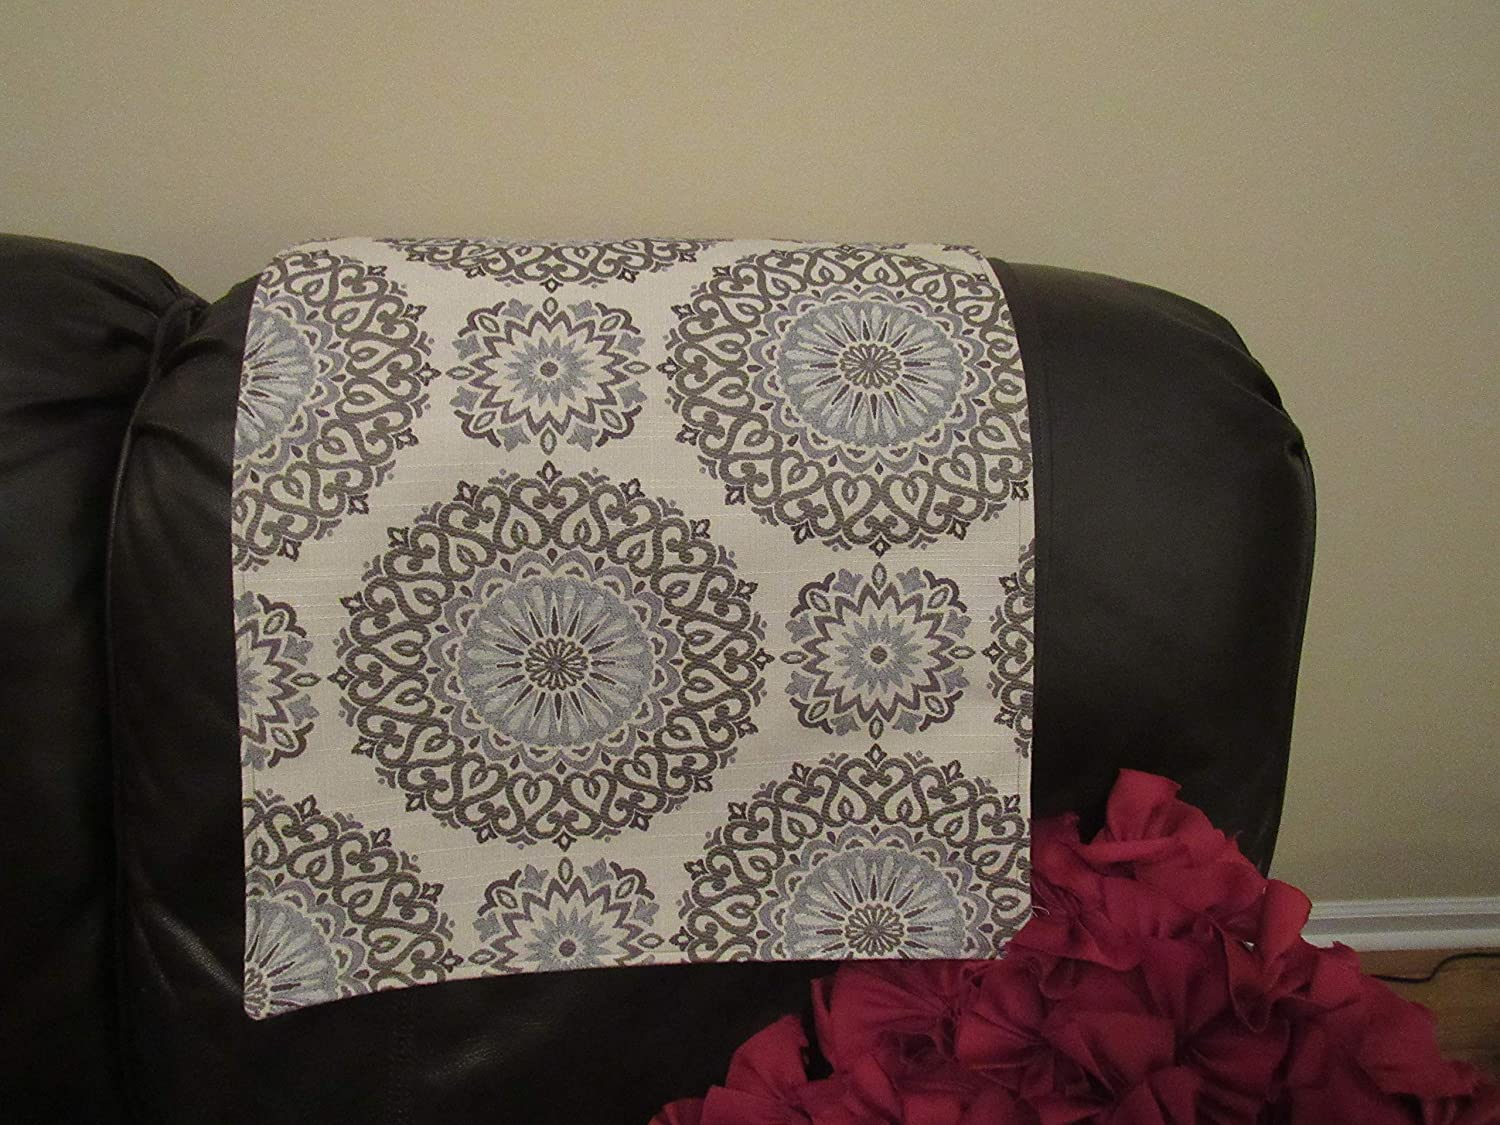 Headrest Cover, Recliners slipcover, sofas, loveseats, furniture protector 17x27 By Bittlemen Co.